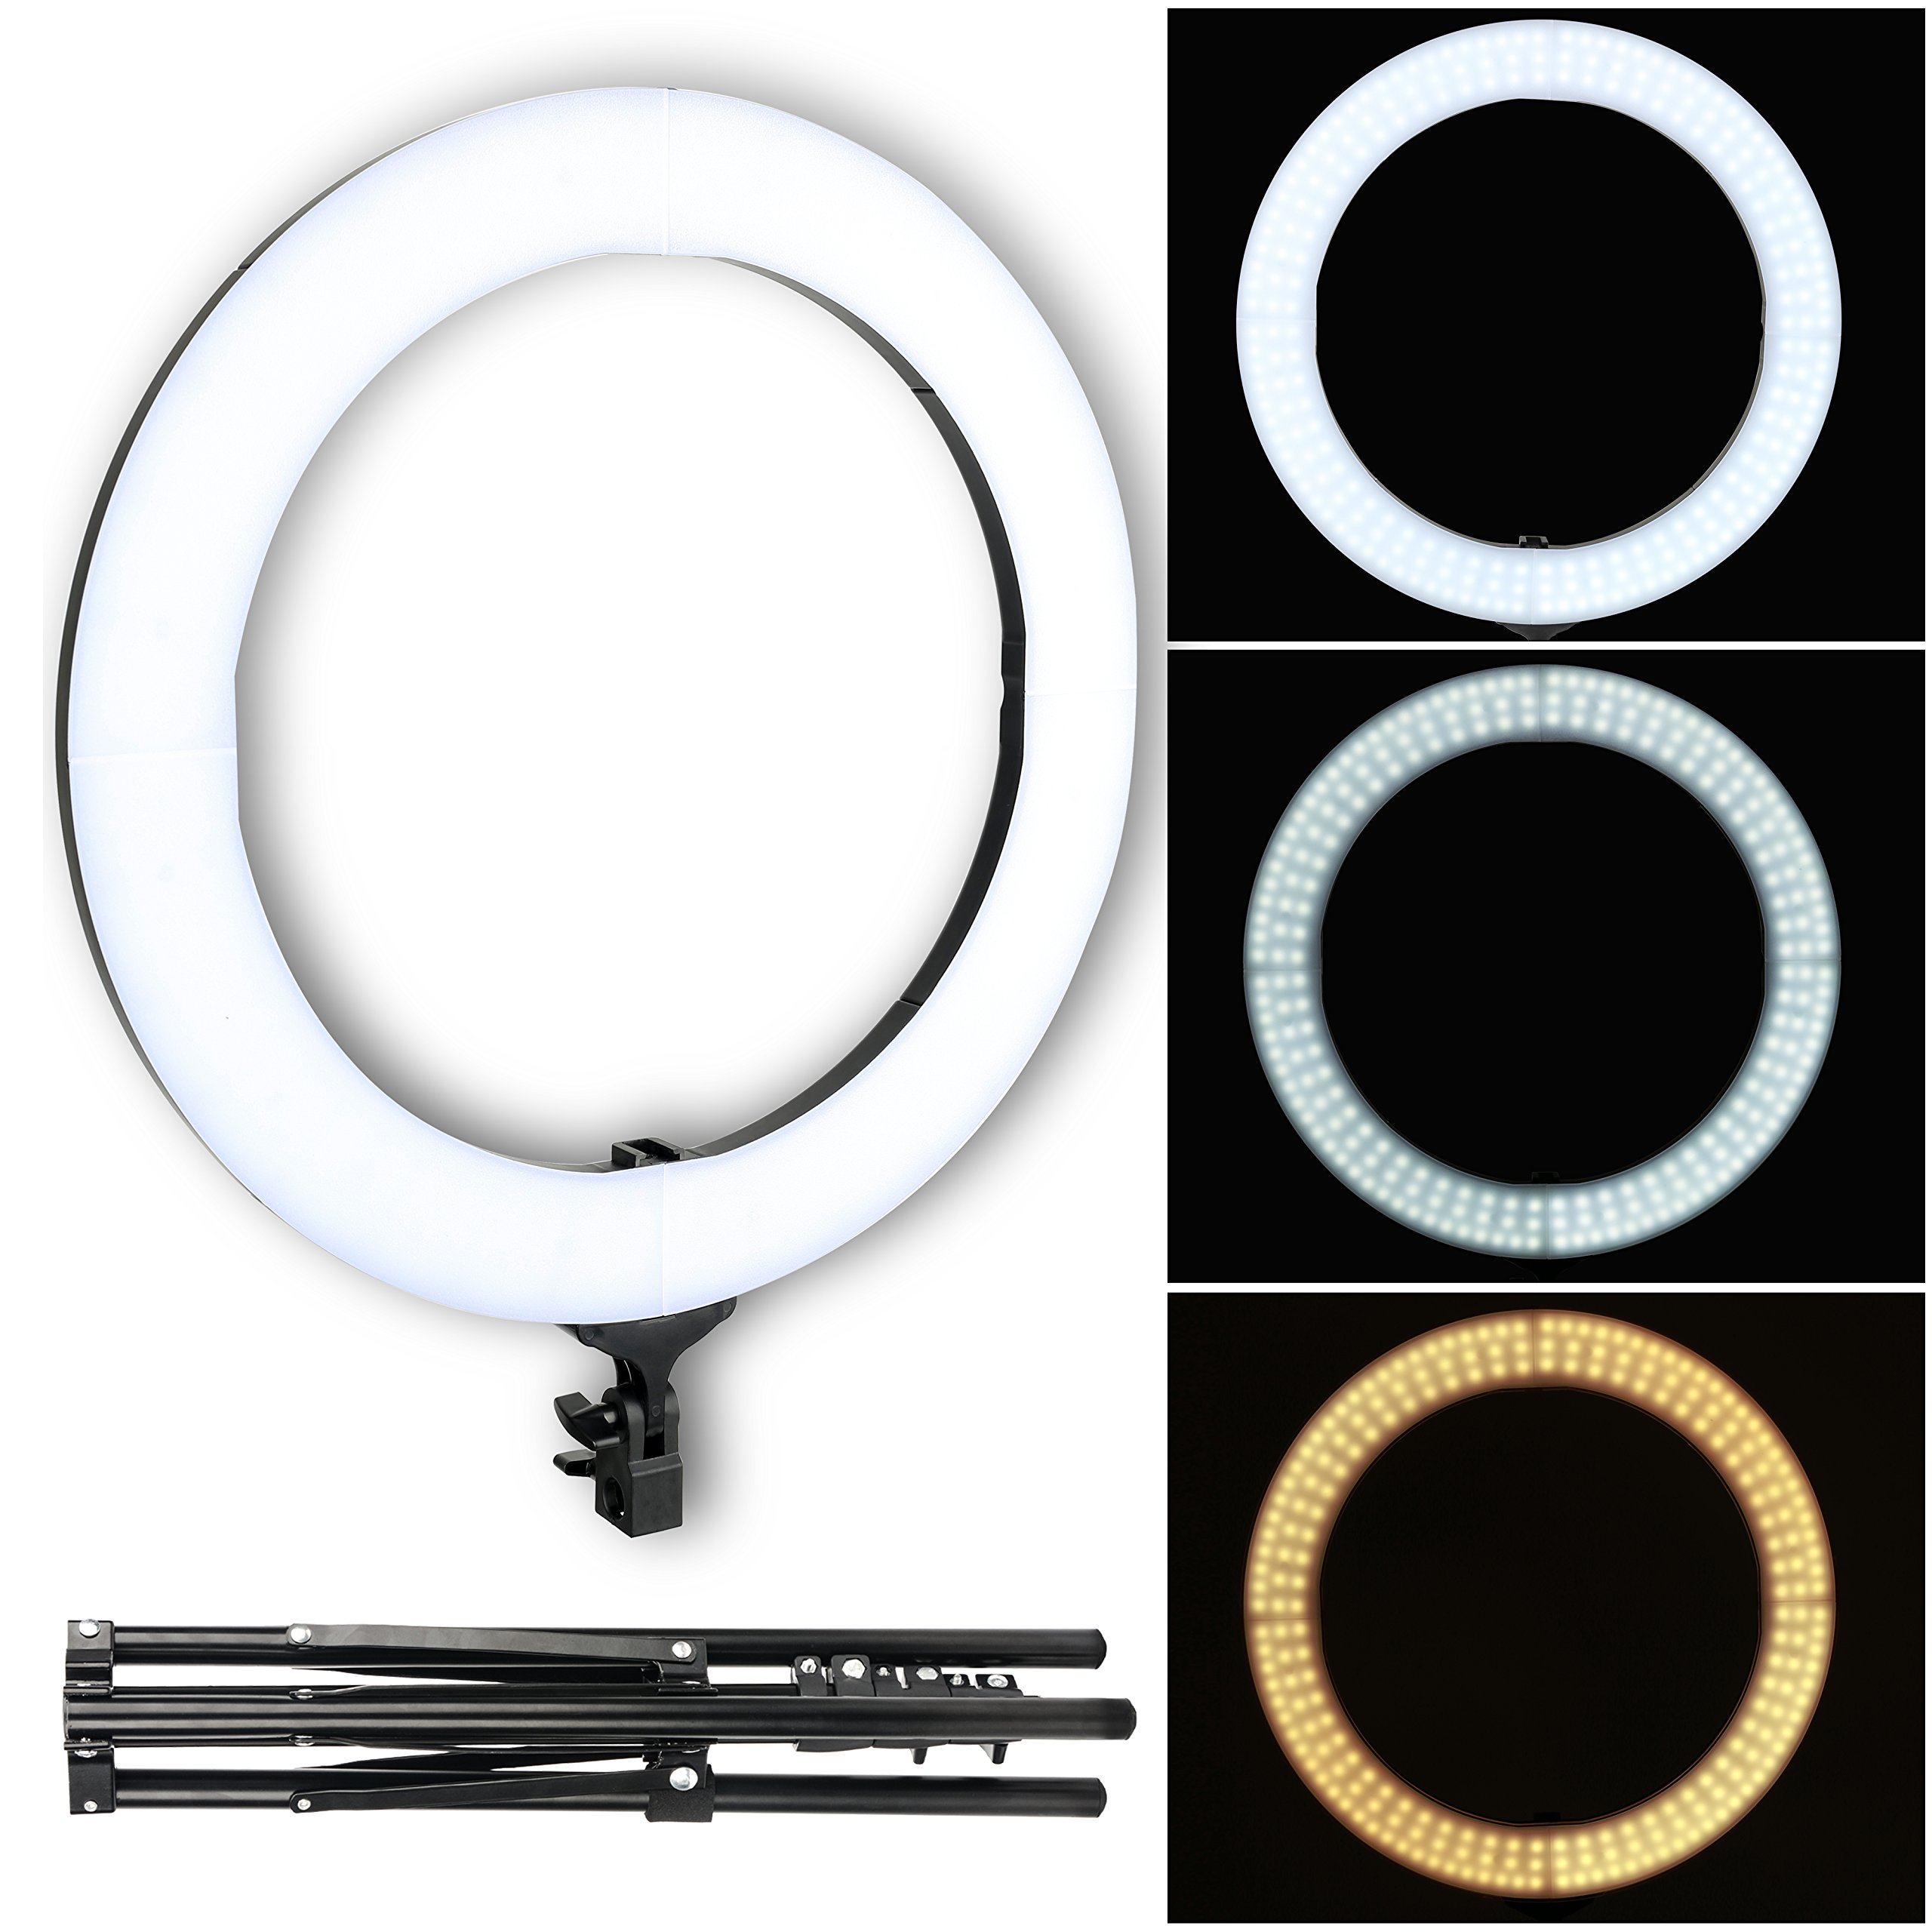 ZOMEI LED Color Temperature Ring Light, 18-inch Outer 58W 2700-5500K Dimmable LED Video Lighting kit with Stand Phone Adapter Carrying Bag for YouTube Vlog Makeup Video Shooting Salon Portrait Selfie